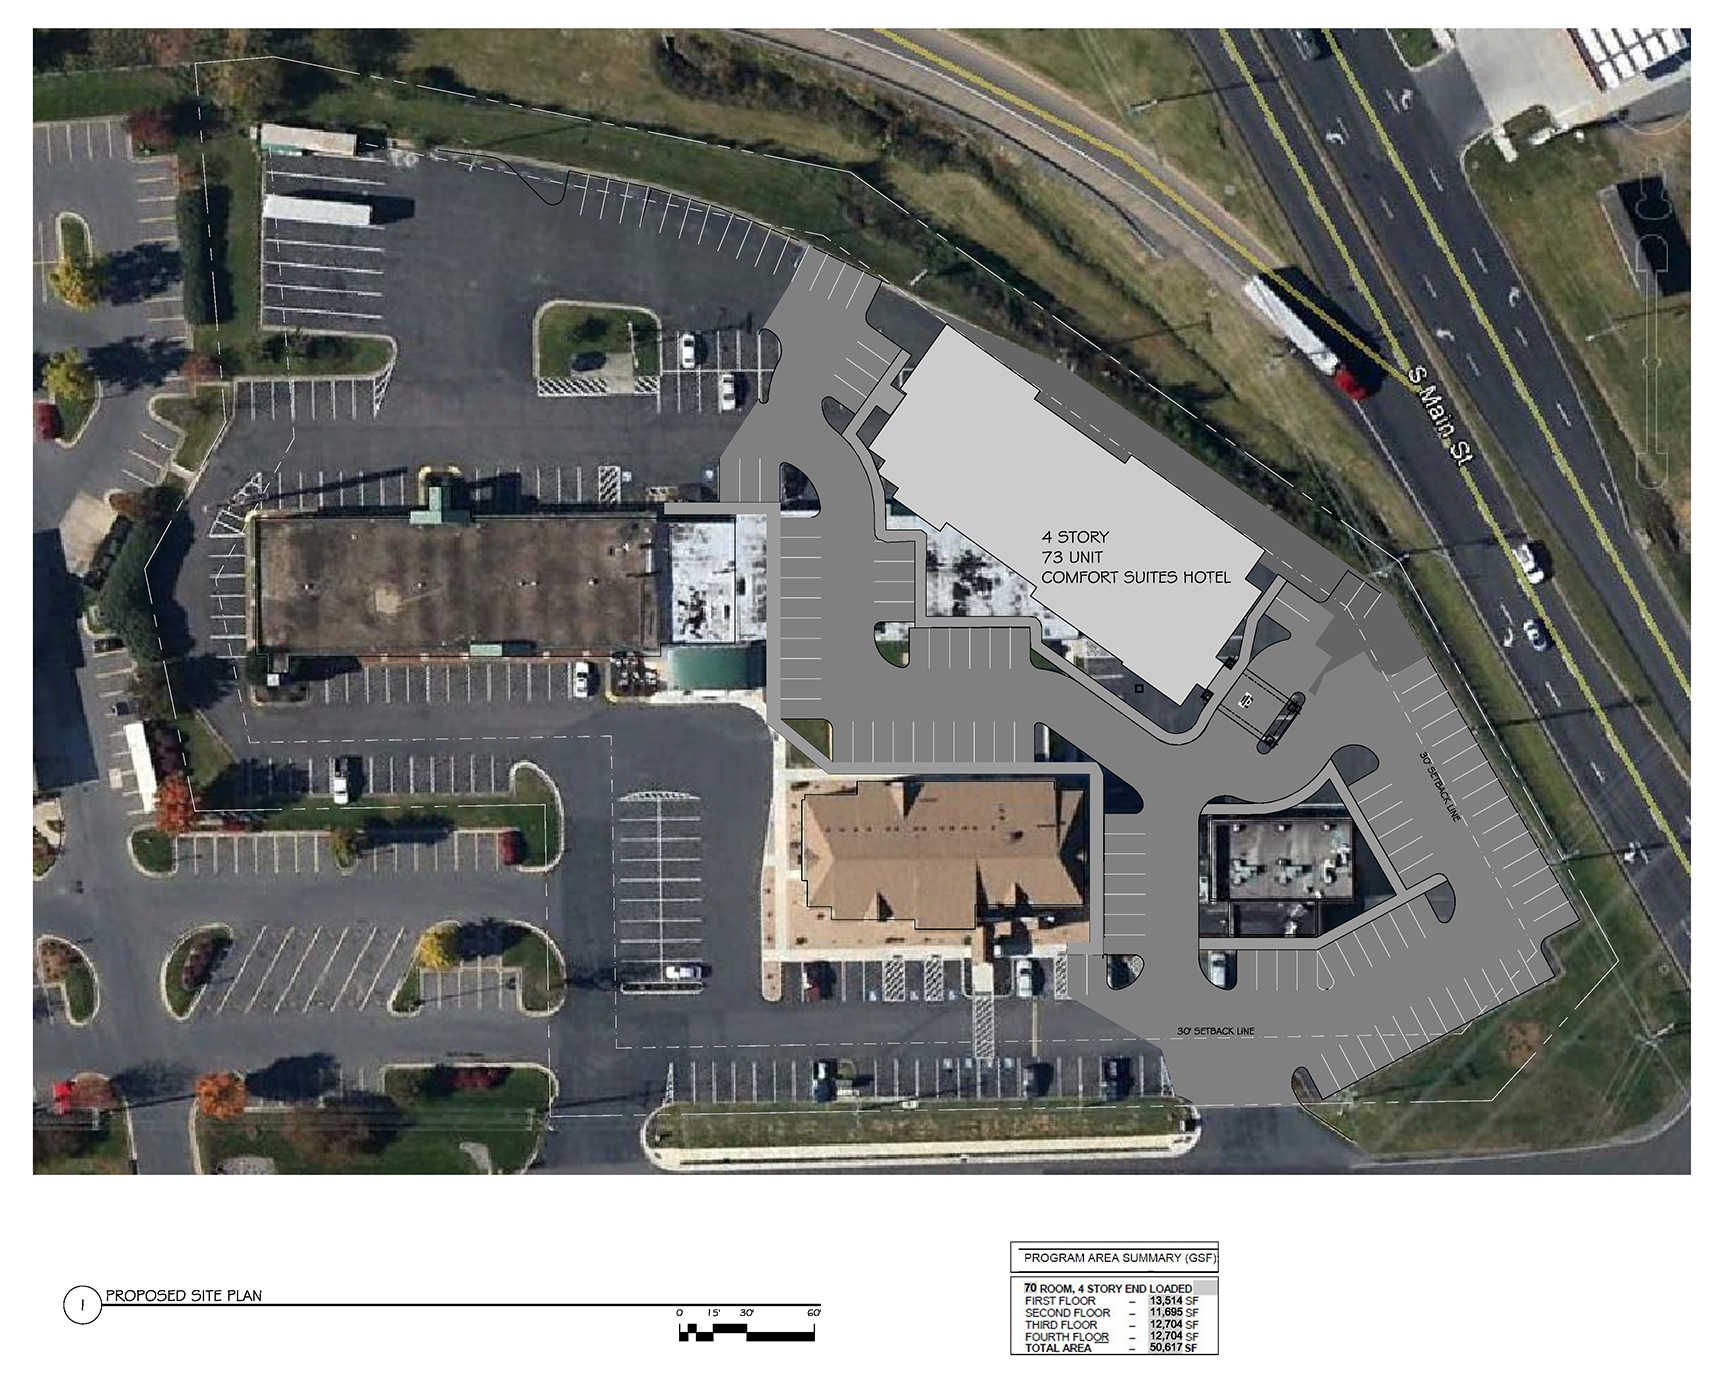 Aerial view, including the parking lot, of hotel